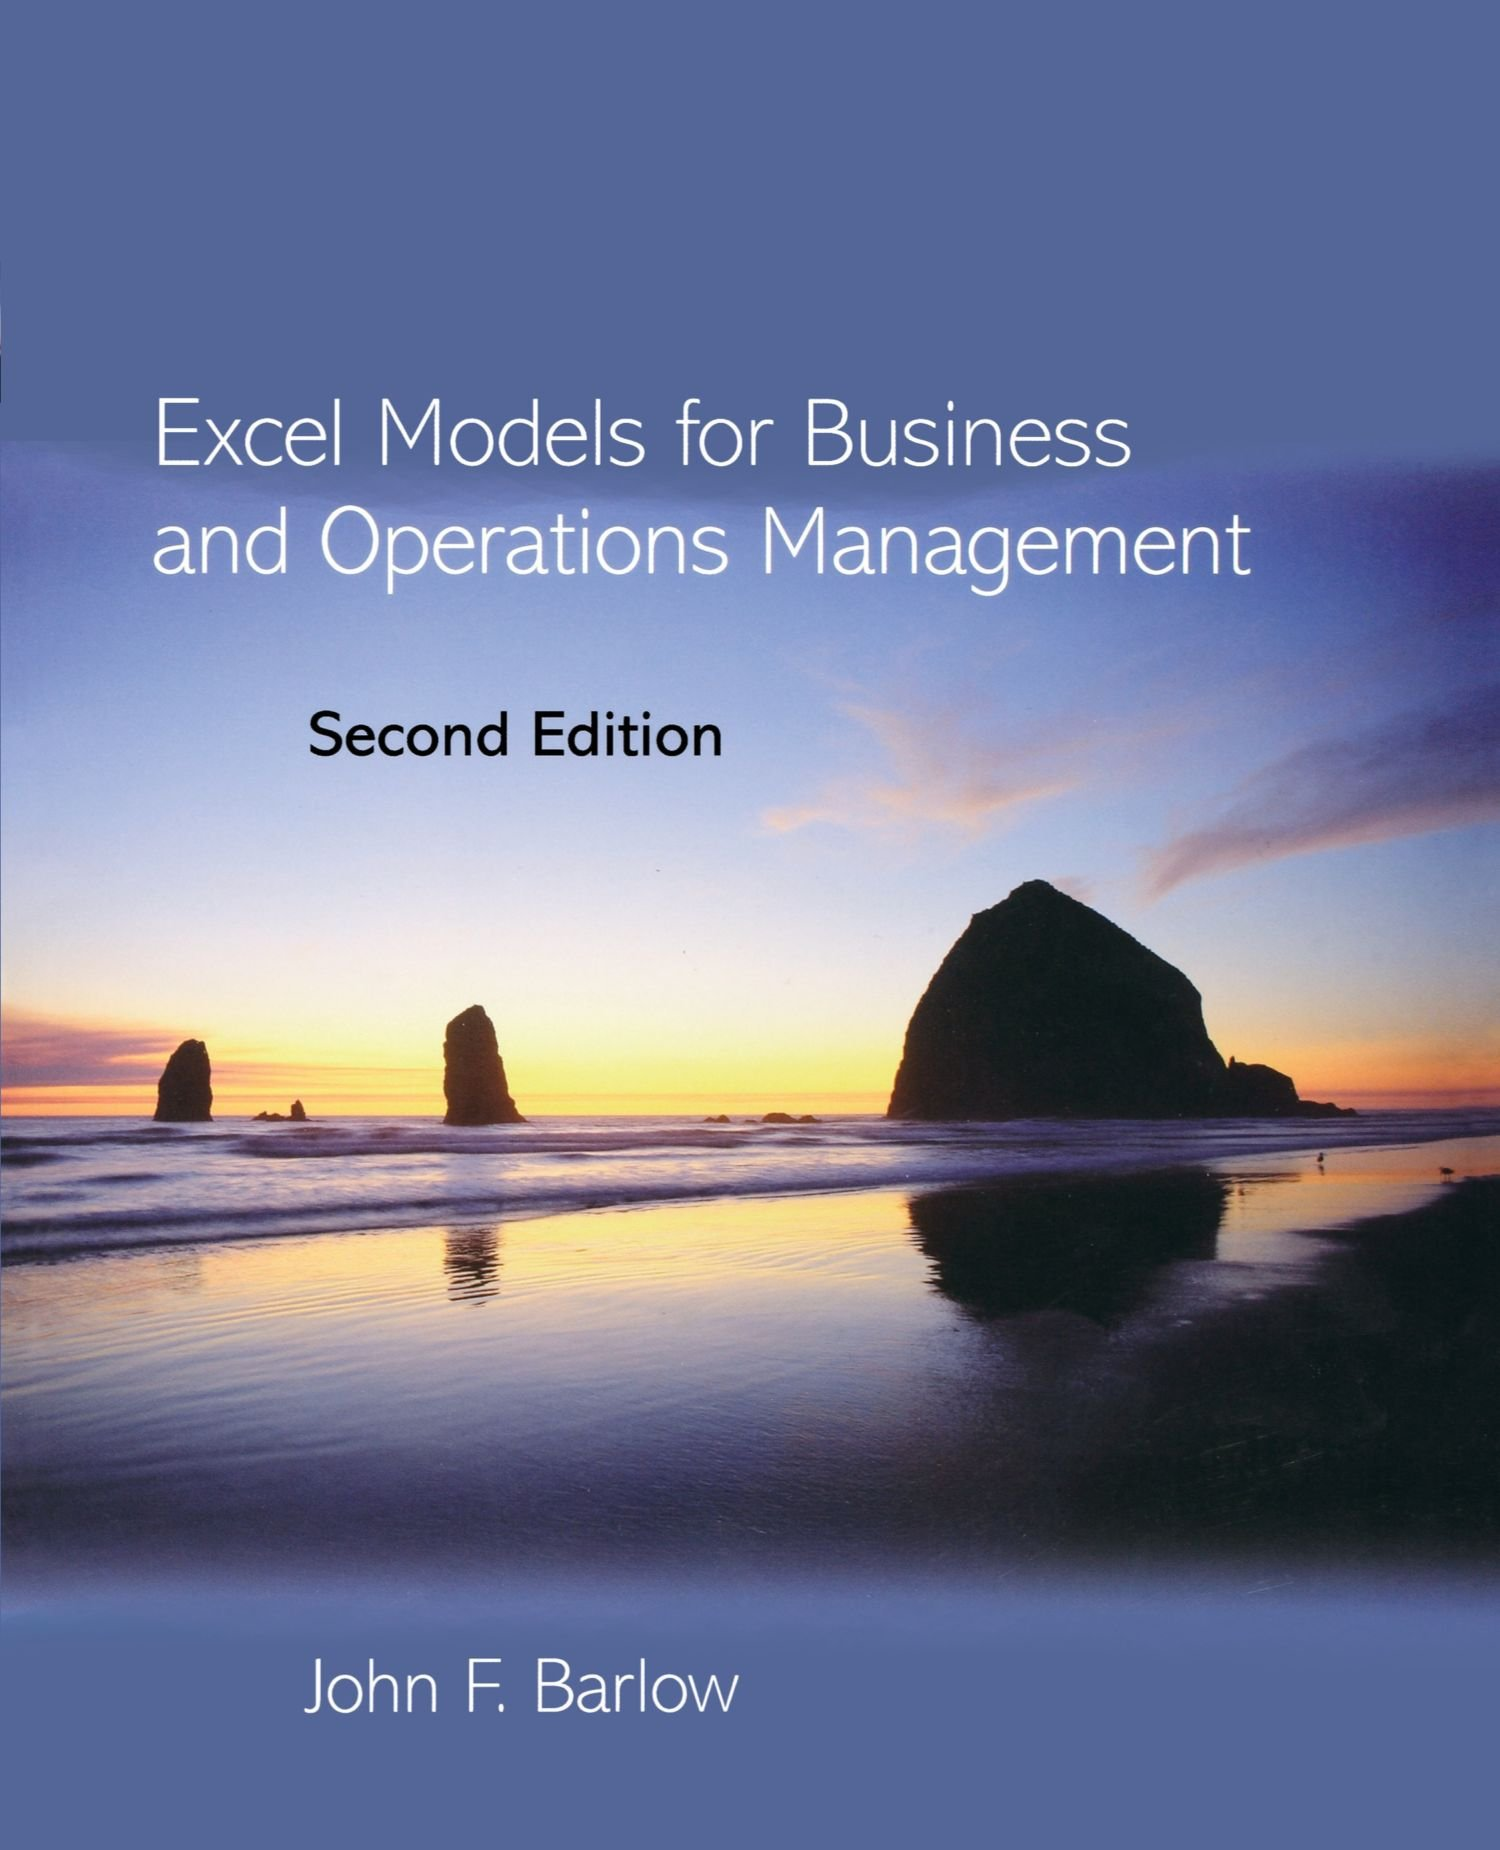 excel models for business and operations management john barlow excel models for business and operations management john barlow 9780470015094 books ca